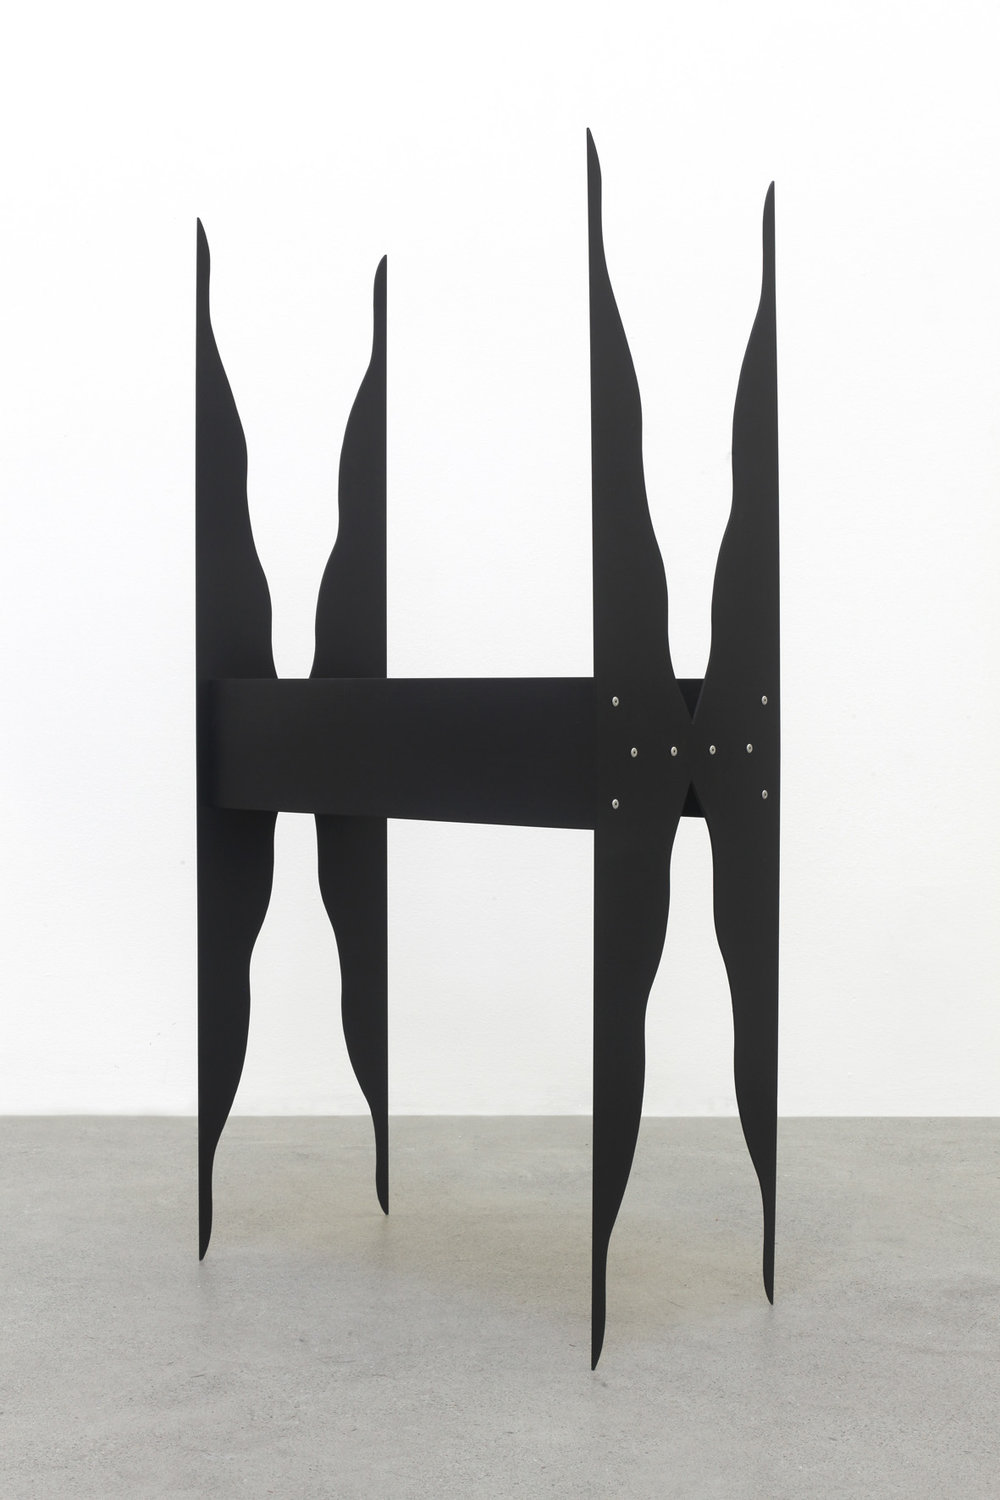 Mirrored Table (Shadow) 2016 Birch plywood, euro-beech hardwood, aluminum, aluminum rivets, acrylic 121.9 x 60.9 x 30.4 cm / 48 x 24 x 12 in